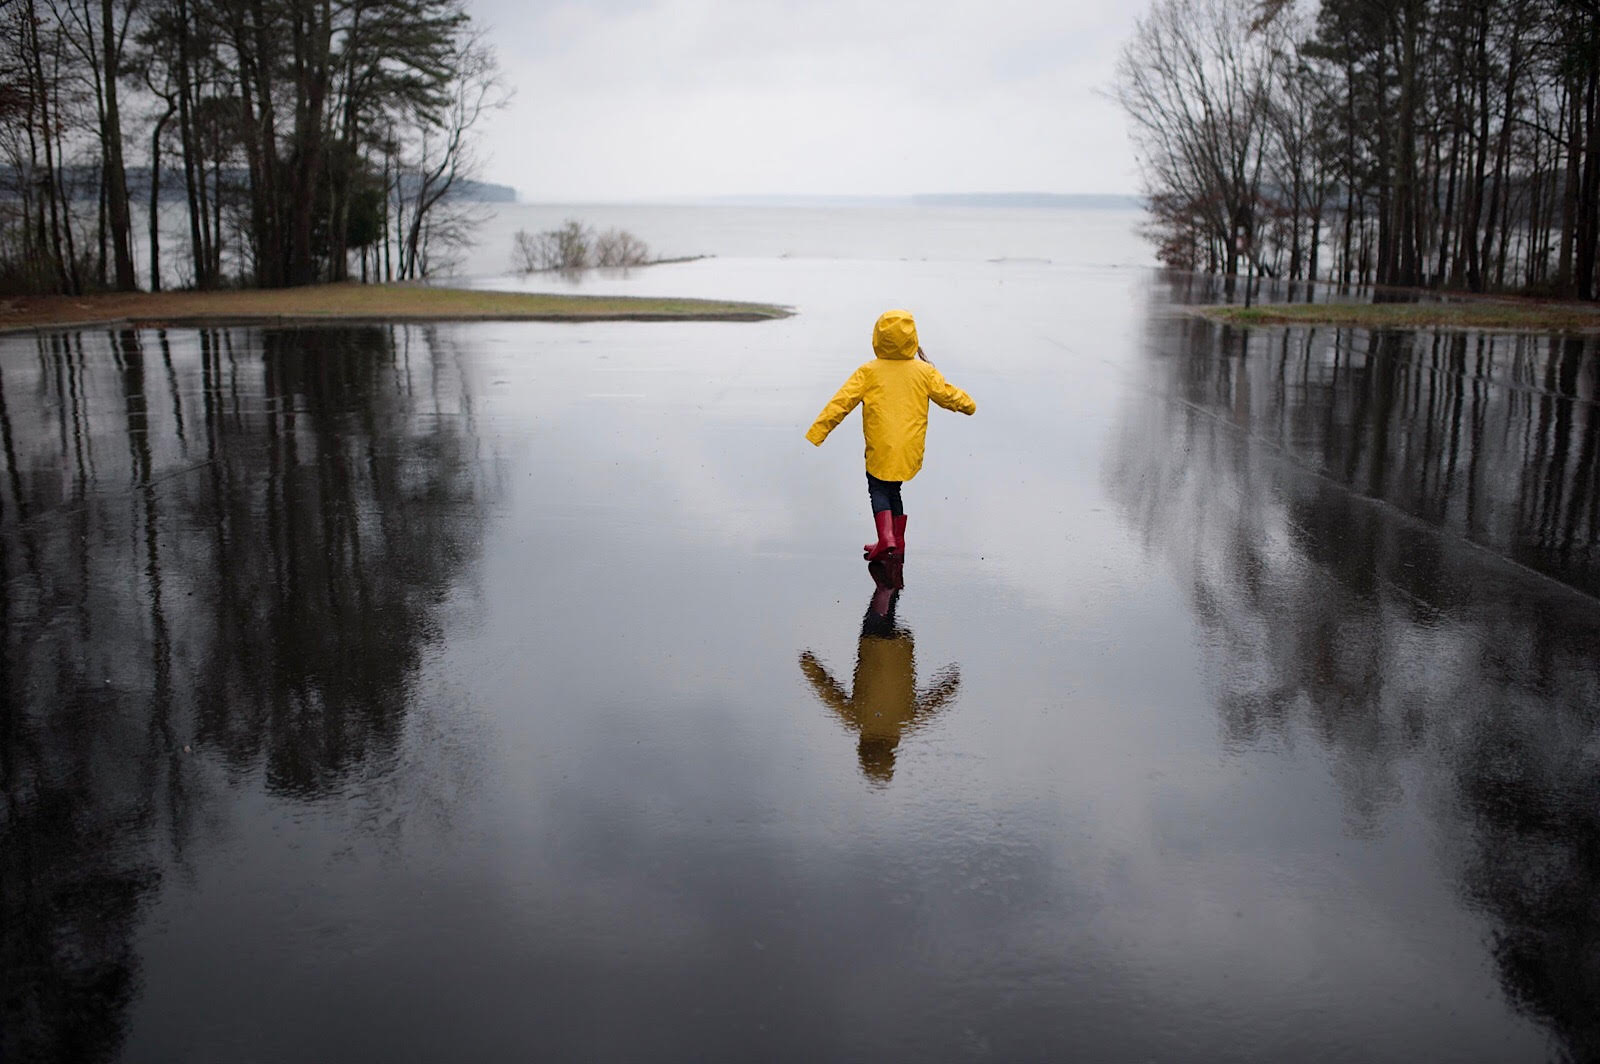 Rainy and foggy days can be very gloomy to some. However, if you look for an interesting composition and use a pop of color, you can achieve a beautiful and interesting photo.